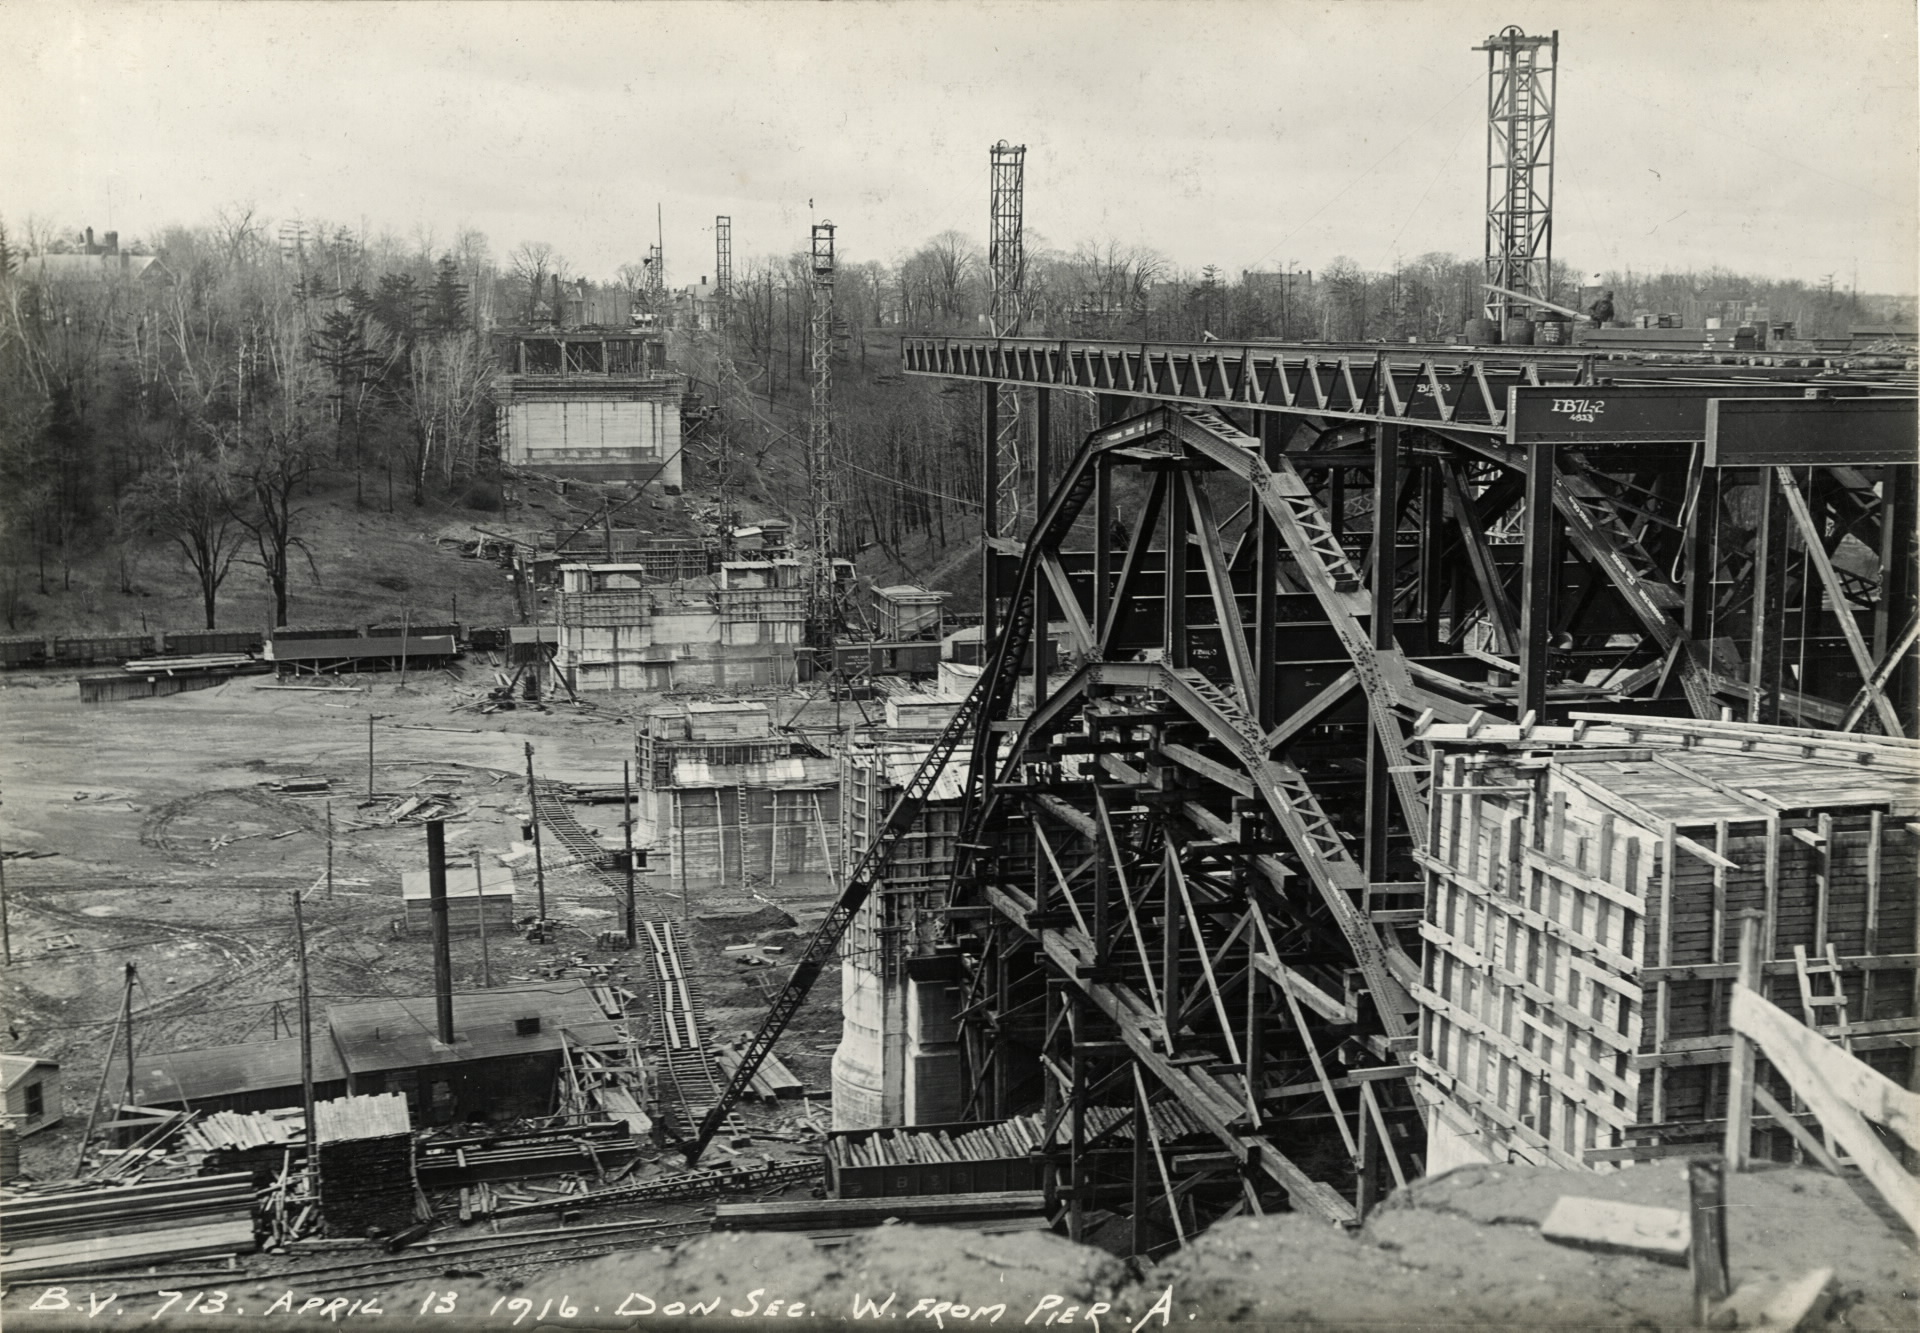 Construction of The Bloor Street Viaduct, 1919